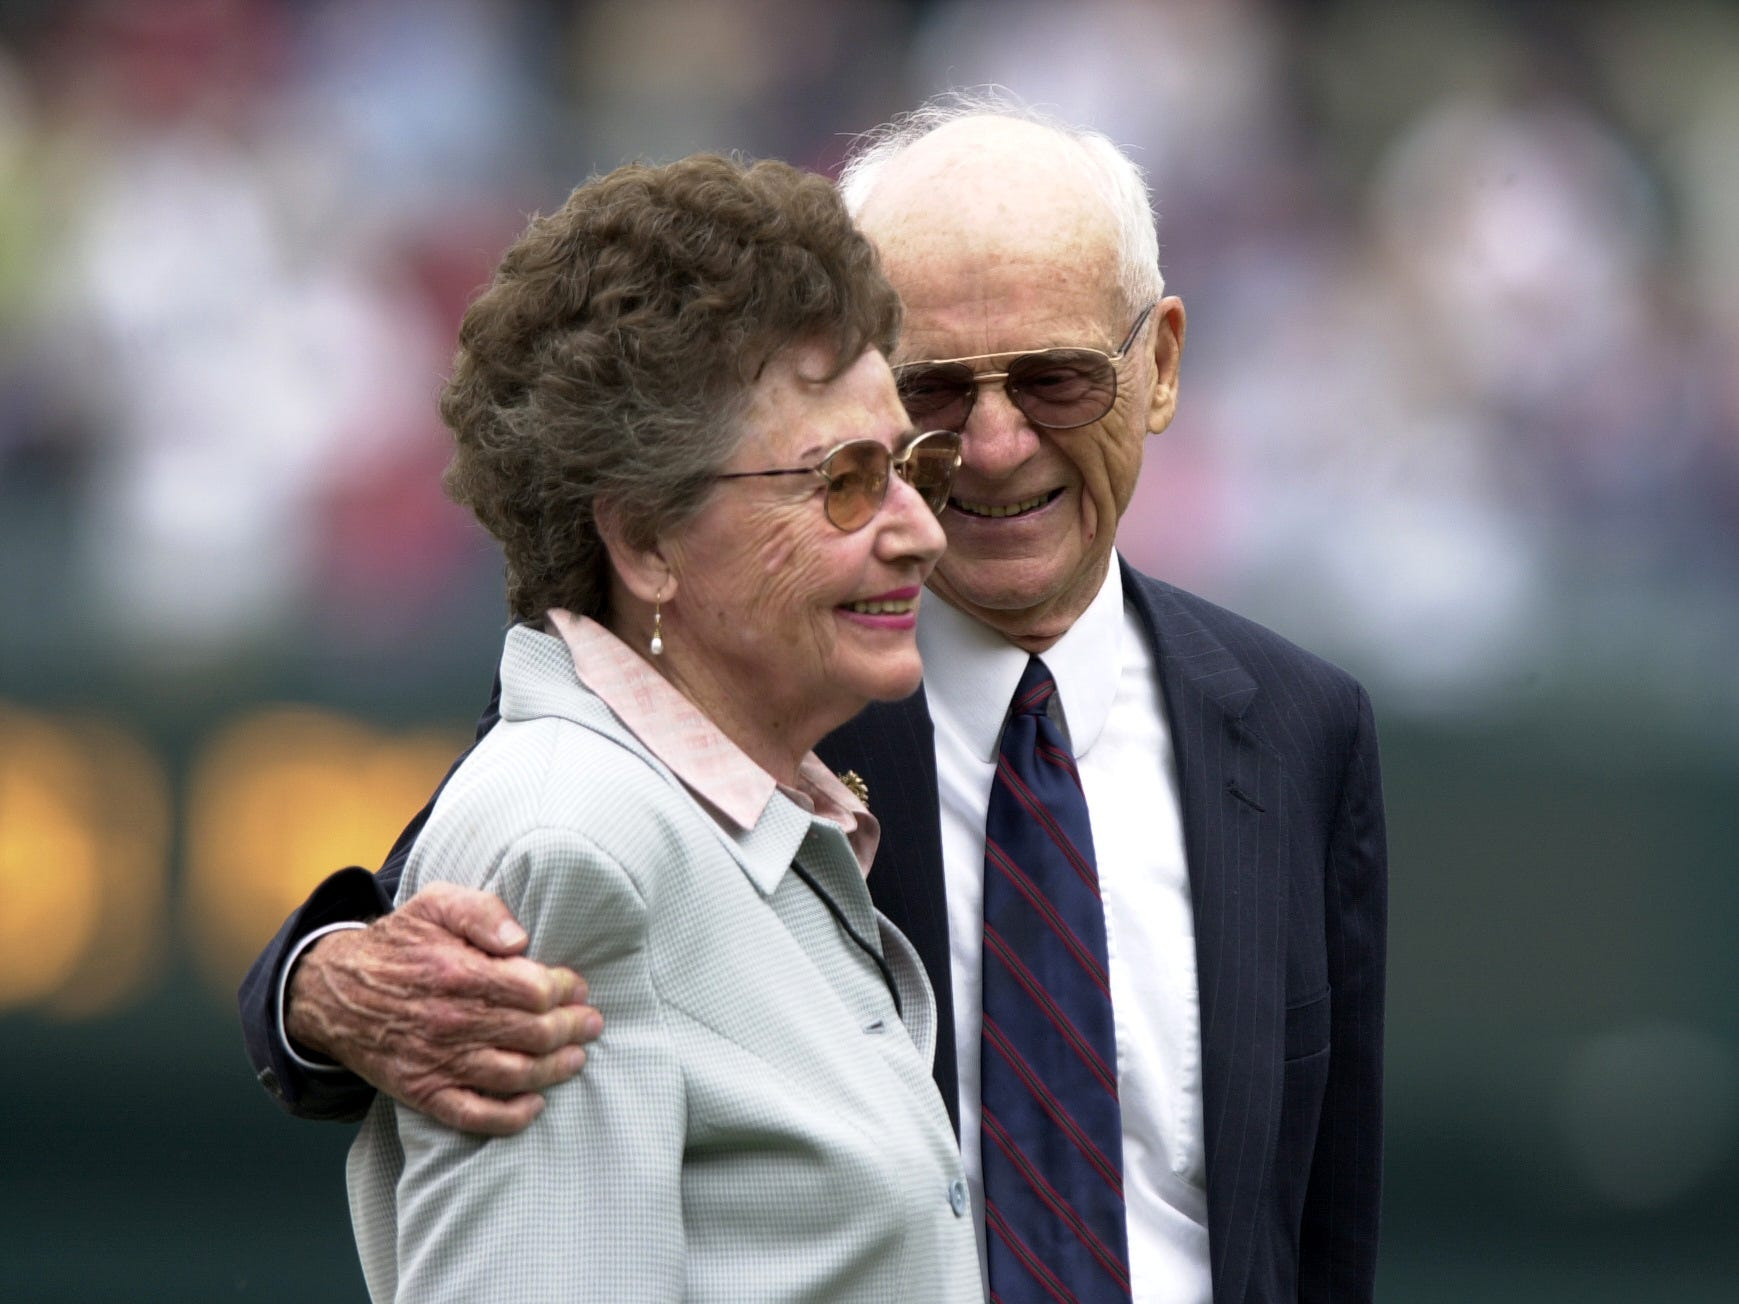 Ernie Harwell smiles at wife Lulu during a ceremony at Comerica Park in 2002.